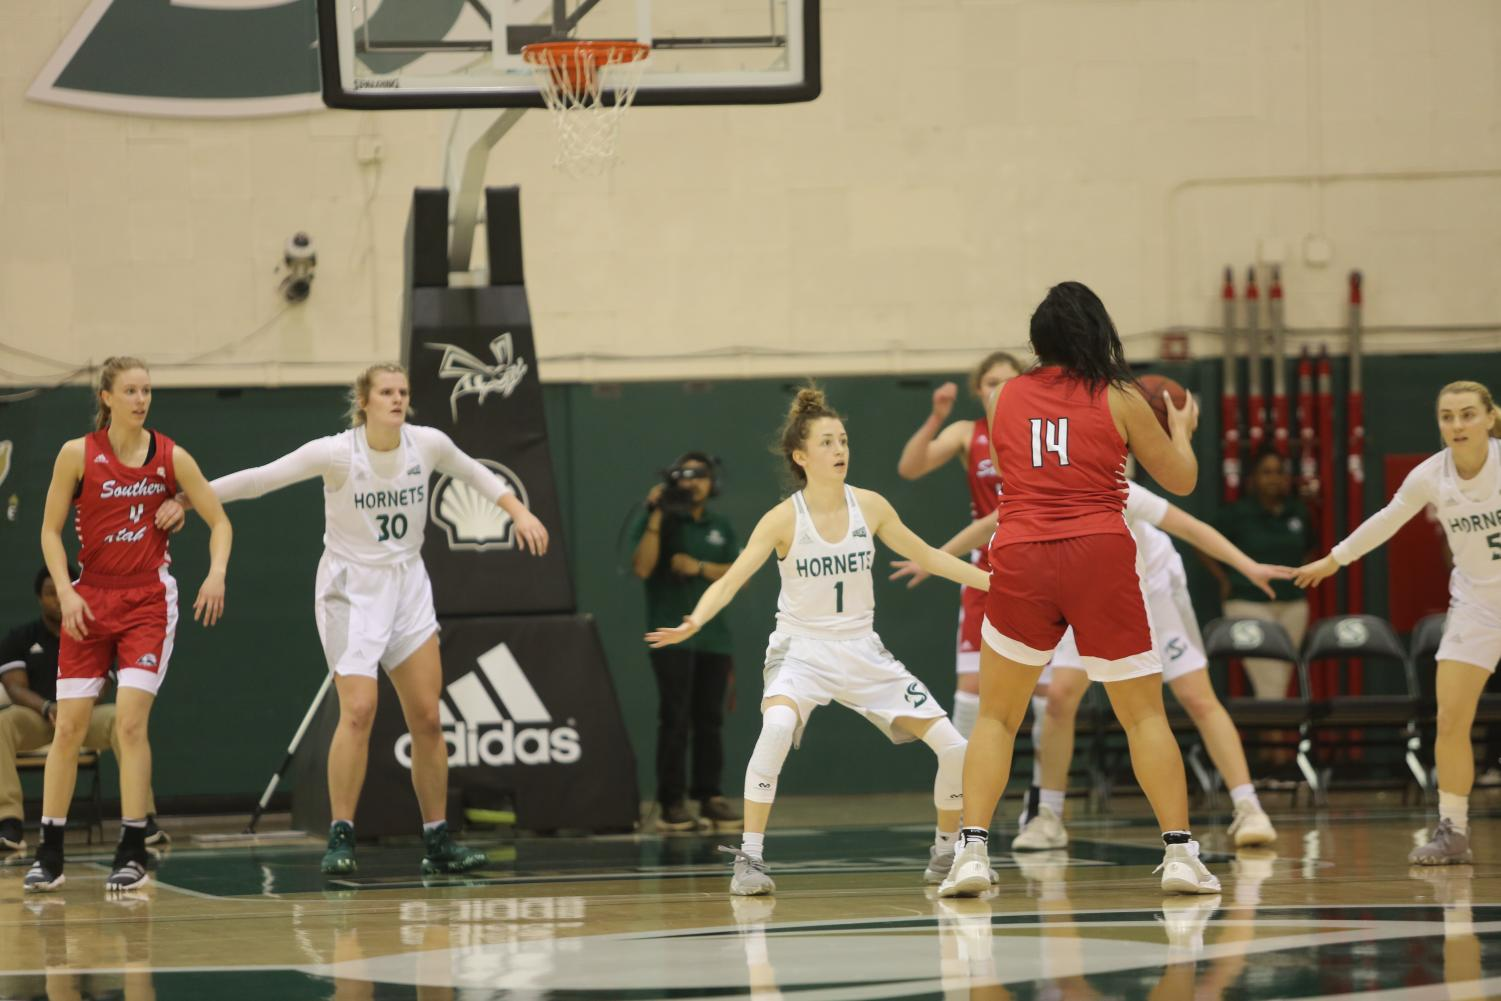 Sac State sophomore point guard Milee Enger defends Southern Utah freshman forward Shalyn Fano against the Thunderbirds on Saturday, Jan. 18 at the Nest. The Hornets lost 70-44 at the University of Idaho on Monday night.